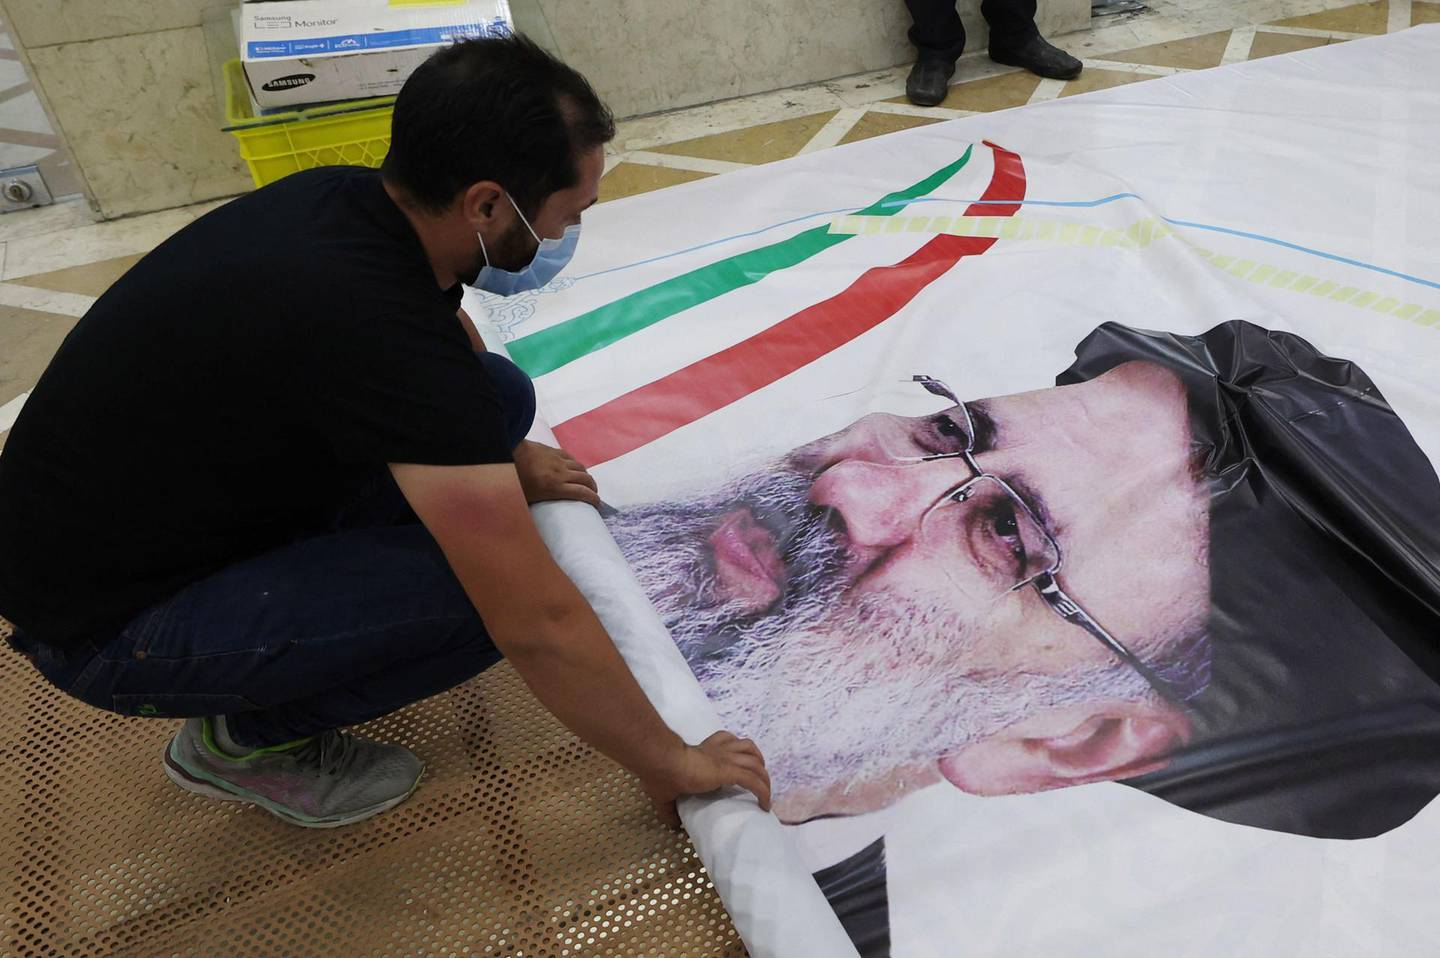 A worker prepares a campaign banner of presidential candidate Ebrahim Raisi at a print shop in the Iranian capital Tehran on June 7, 2021. Iranians are set to elect a successor to President Hassan Rouhani on June 18 amid widespread discontent over a deep economic and social crisis caused by the reimposition of crippling sanctions after the US pulled out of the 2015 nuclear deal. / AFP / ATTA KENARE